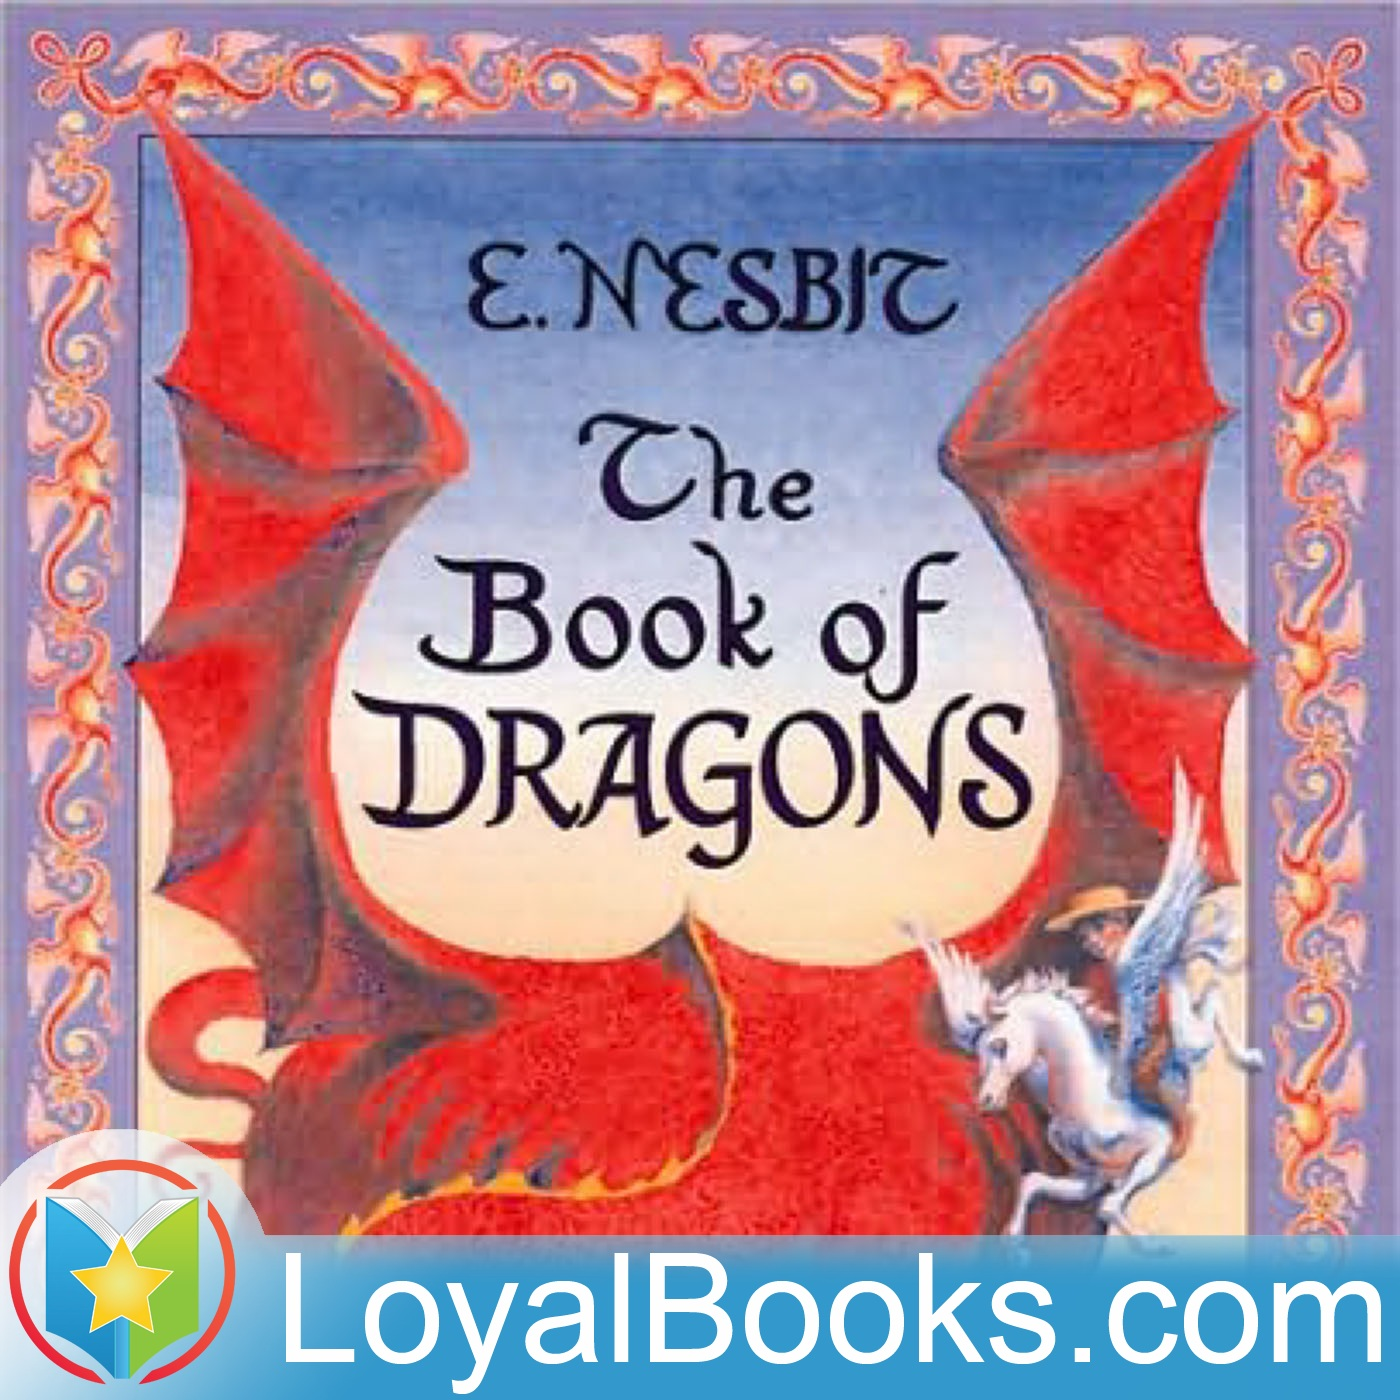 <![CDATA[The Book of Dragons by Edith Nesbit]]>